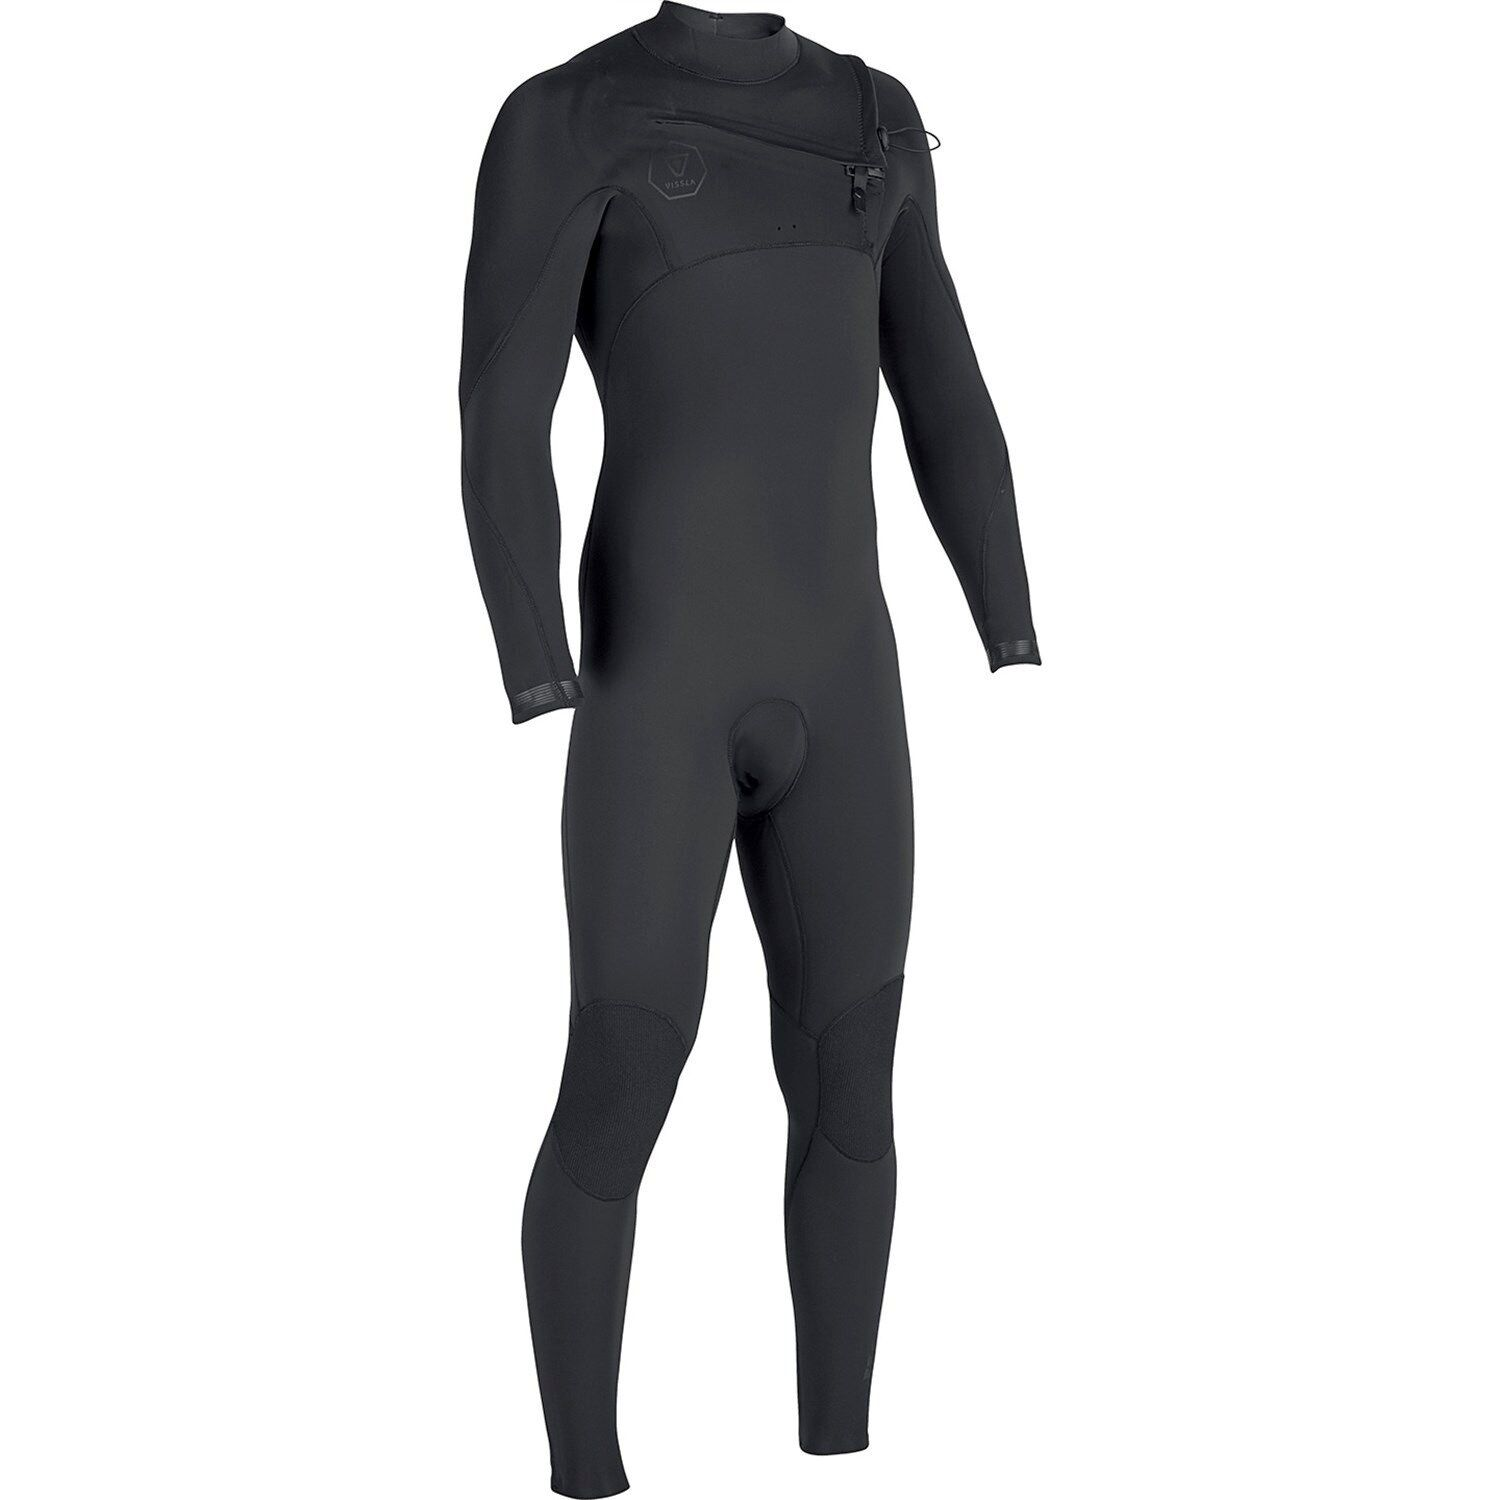 VISSLA Men's 3  2 SEVEN SEAS CZ Full Wetsuit - STE - XLarge - NWT  save up to 30-50% off